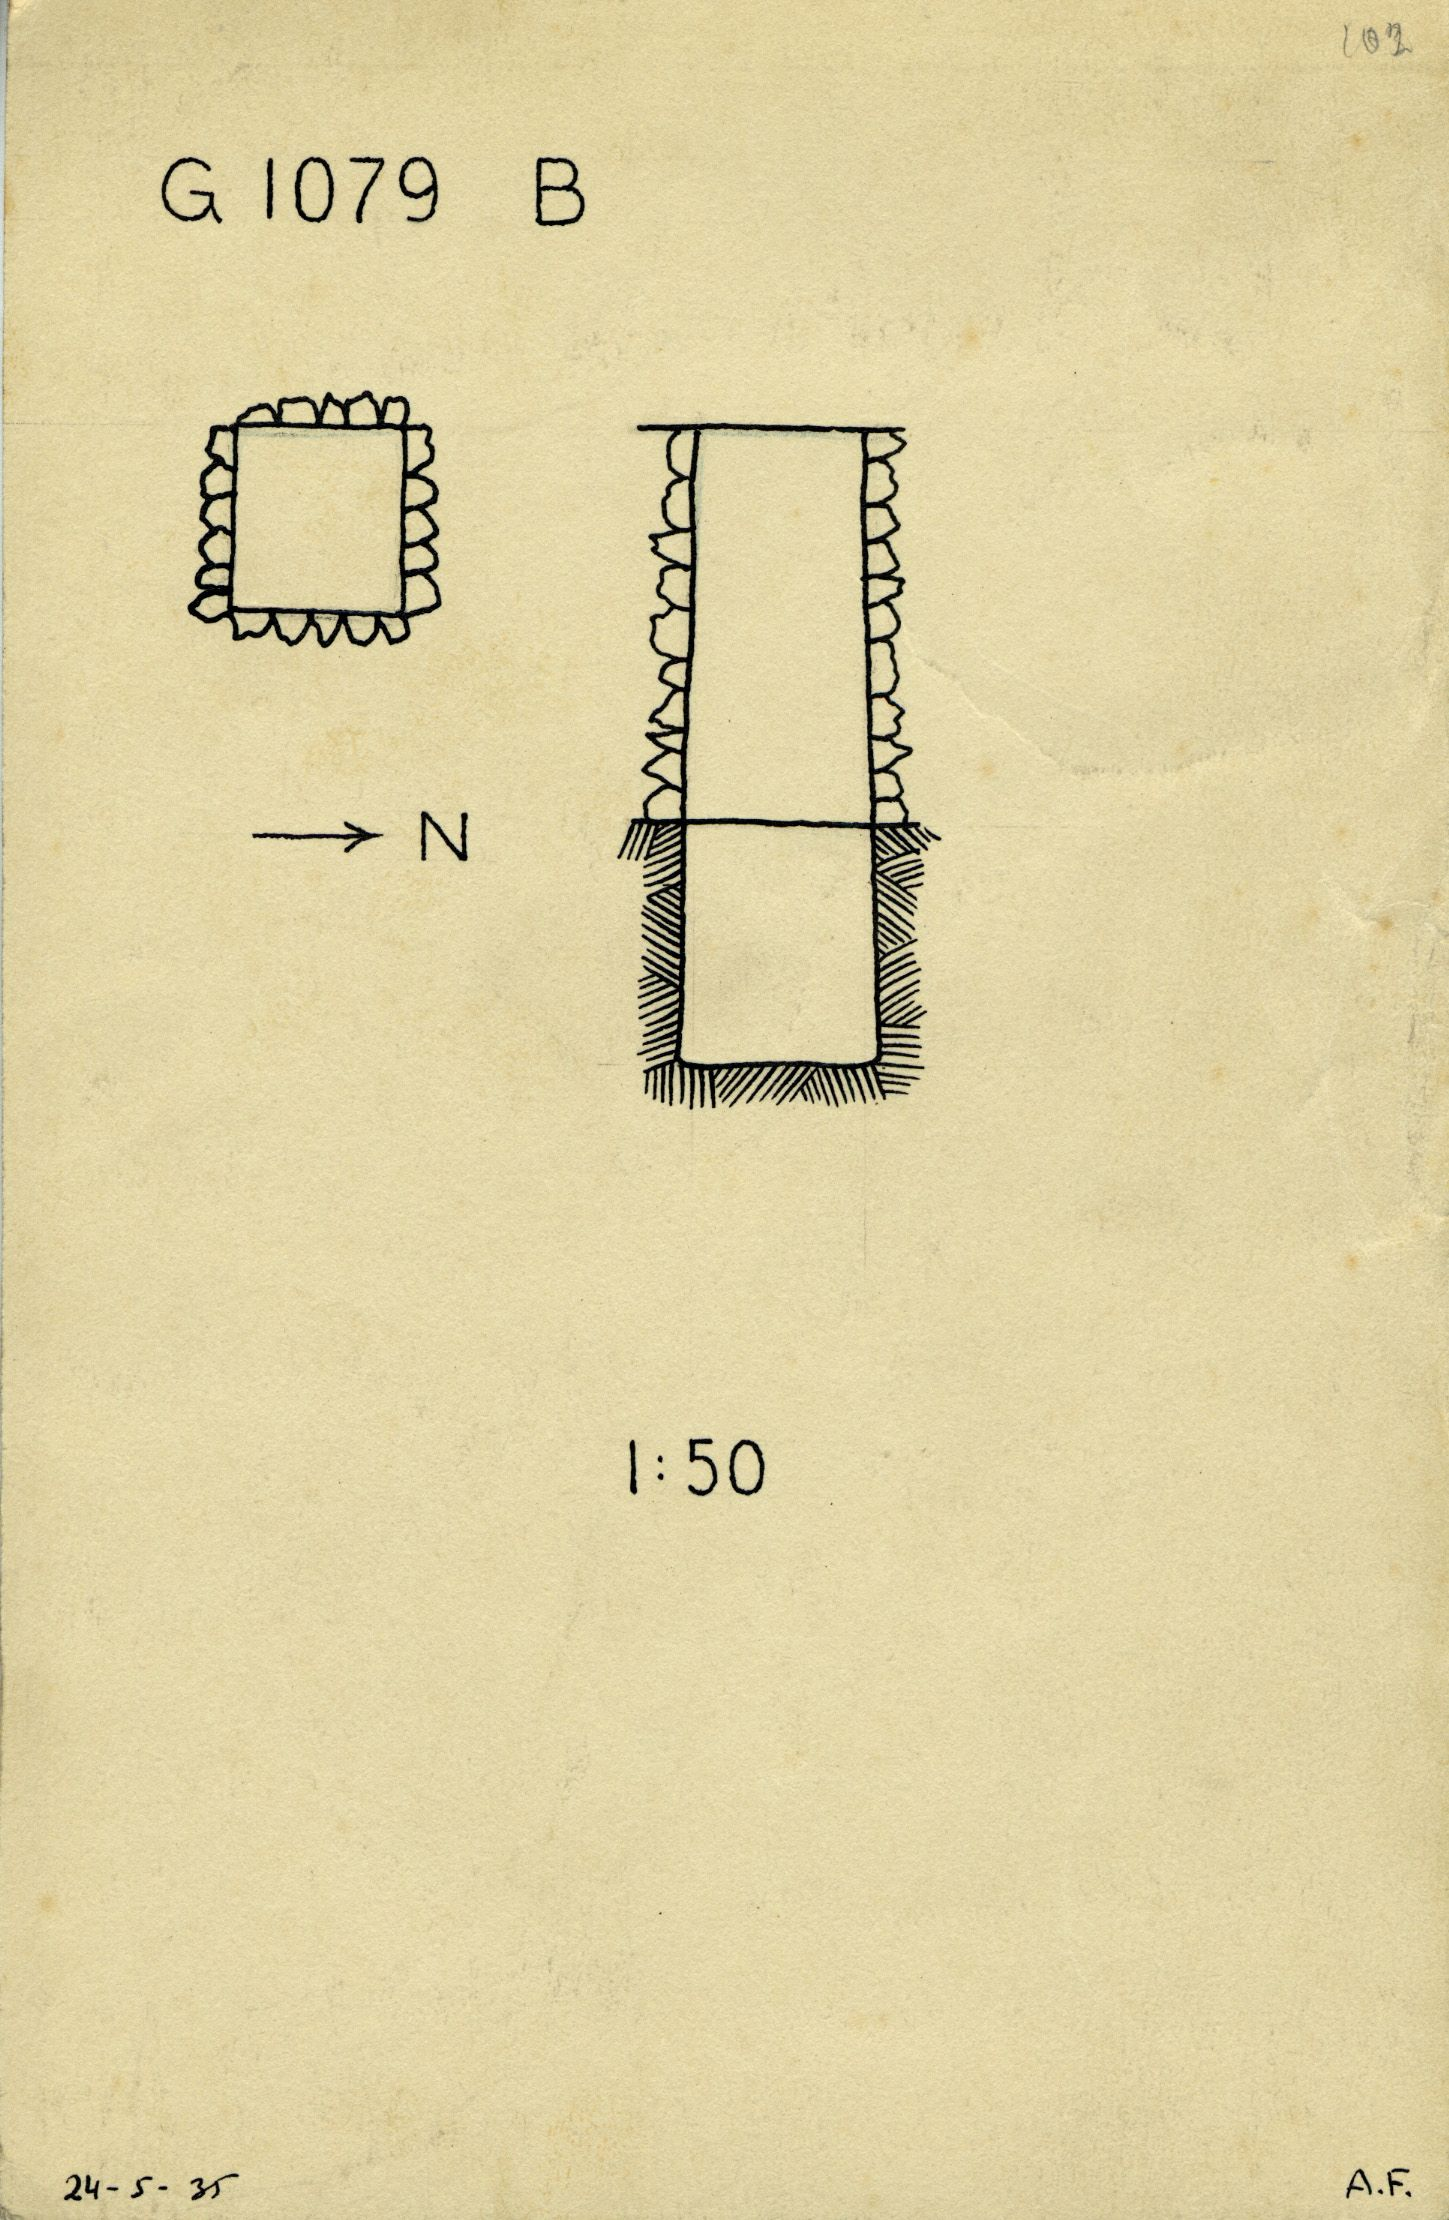 Maps and plans: G 1079, Shaft B